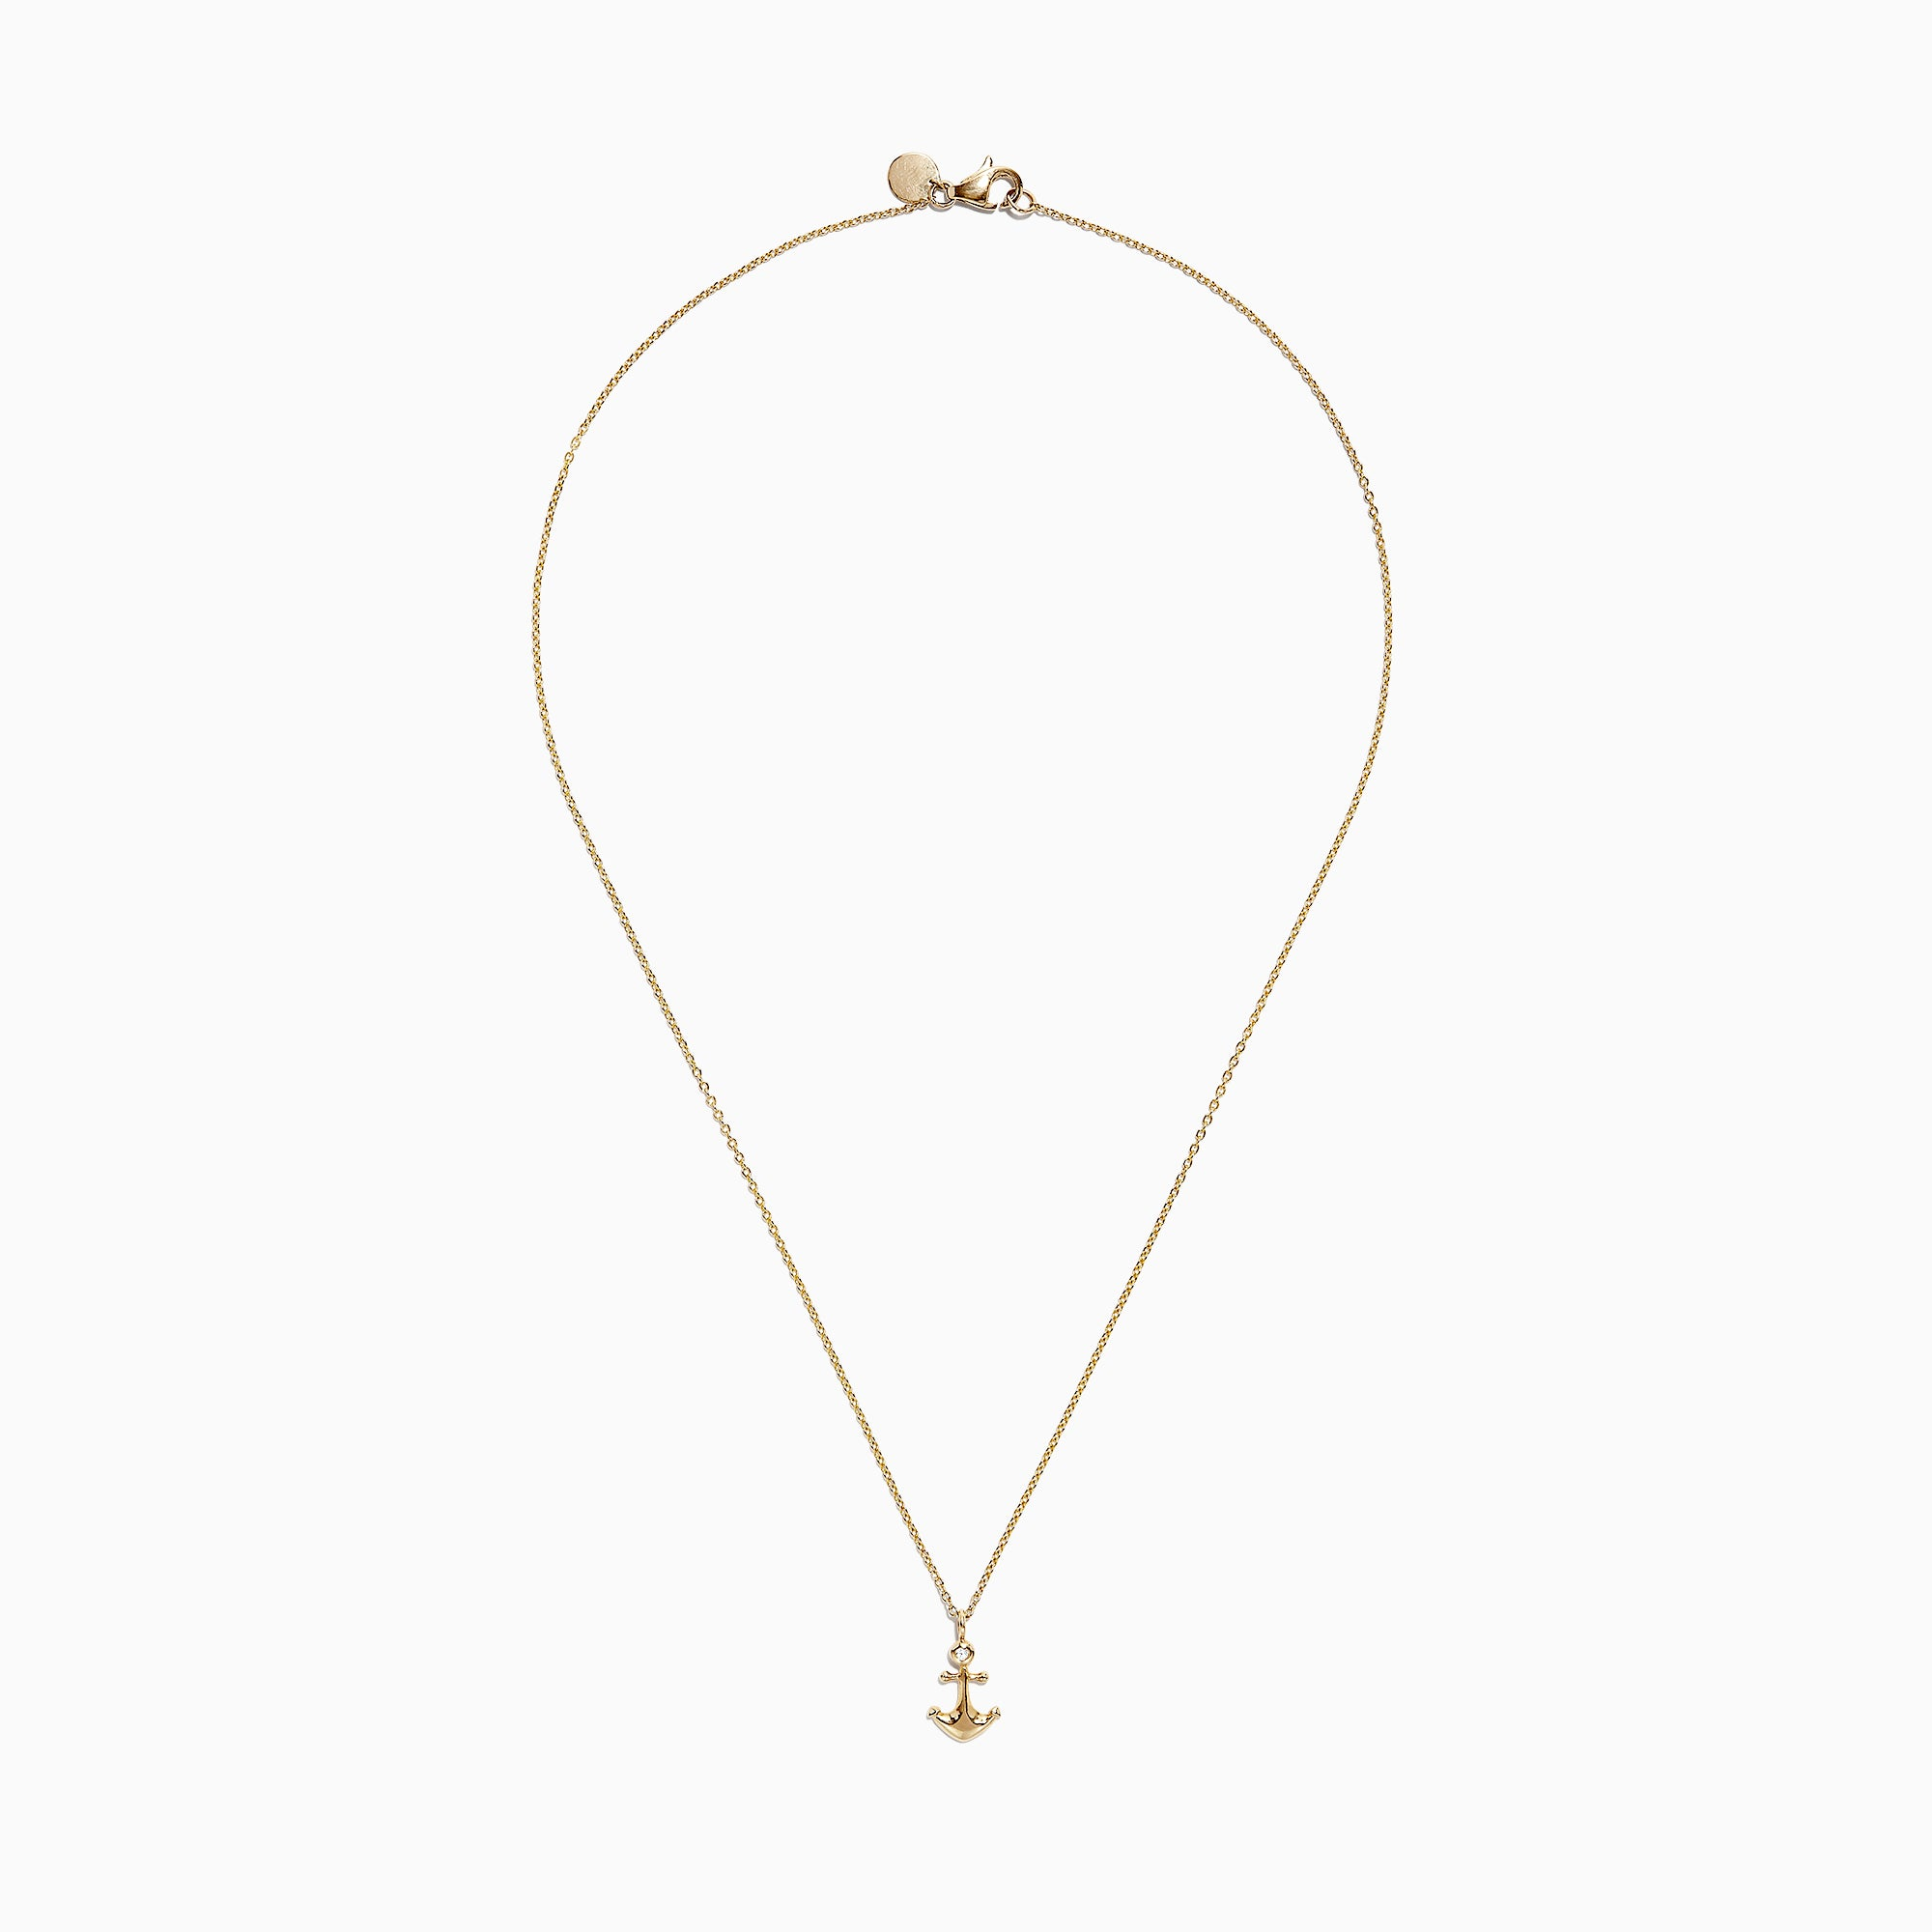 Effy Kidz 14K Yellow Gold Diamond Anchor Necklace, 0.01 TCW